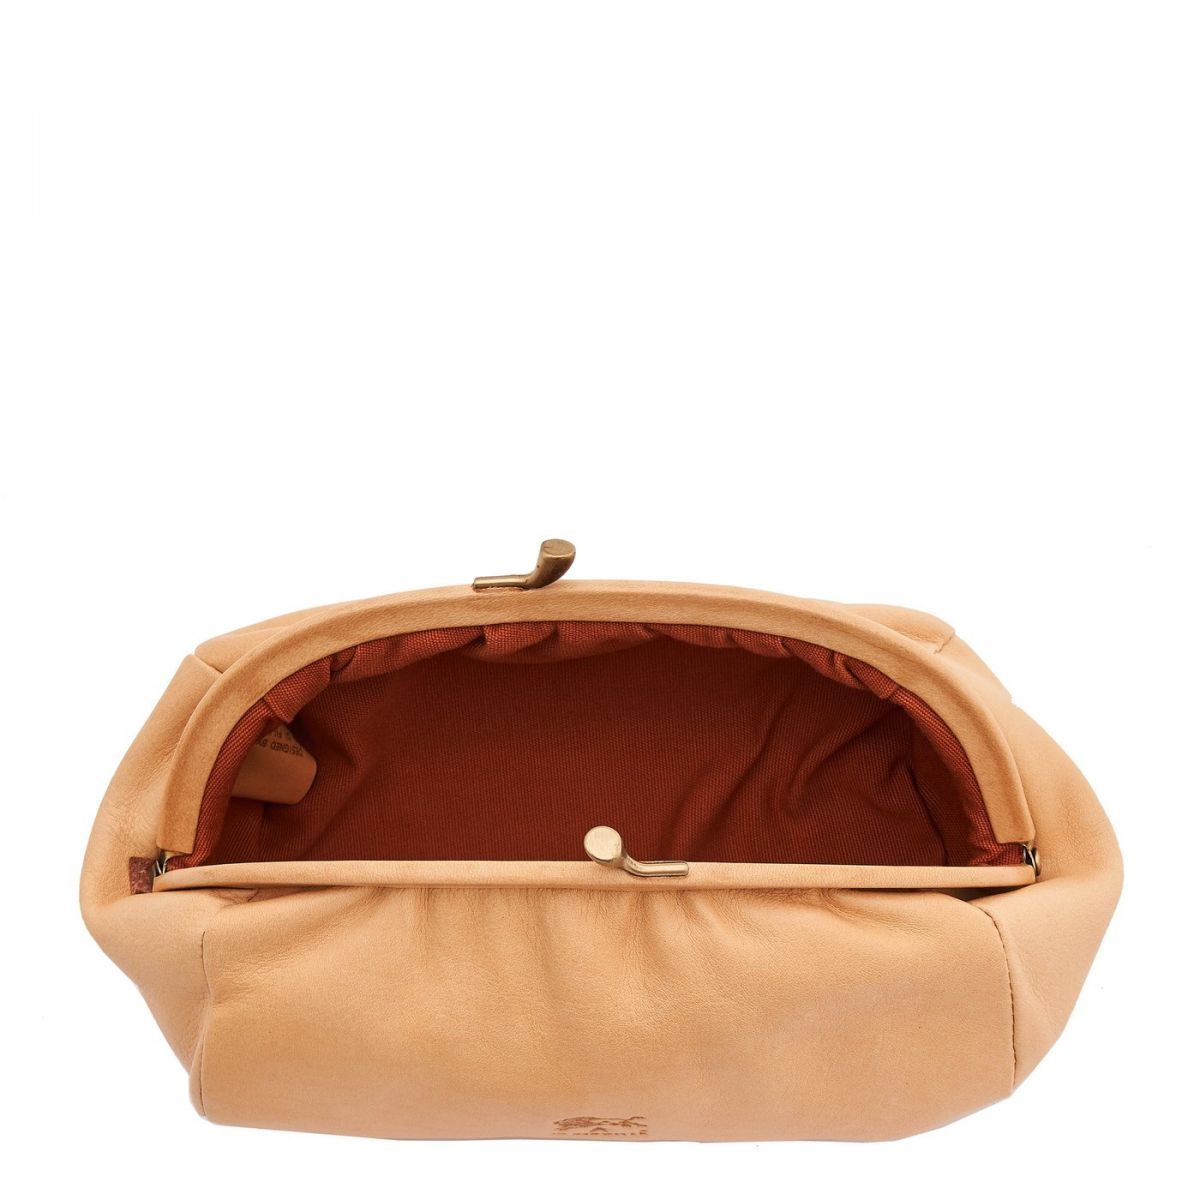 Women's Case in Cowhide Double Leather color Natural - SCA009 | Details